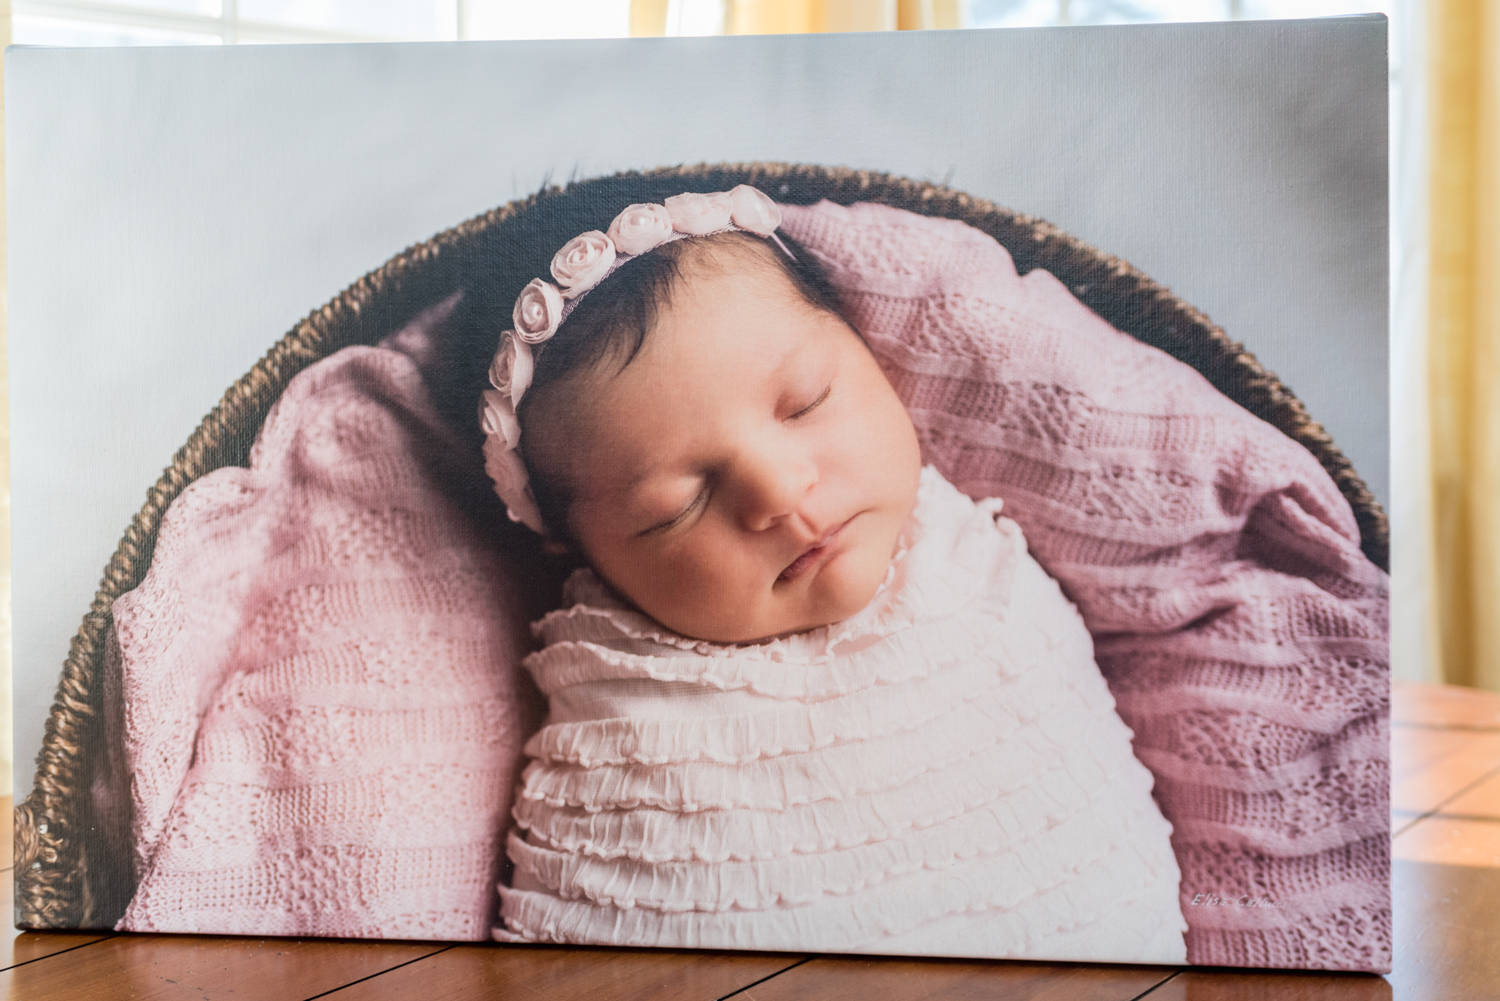 Museum Quality Canvases - The highest quality around